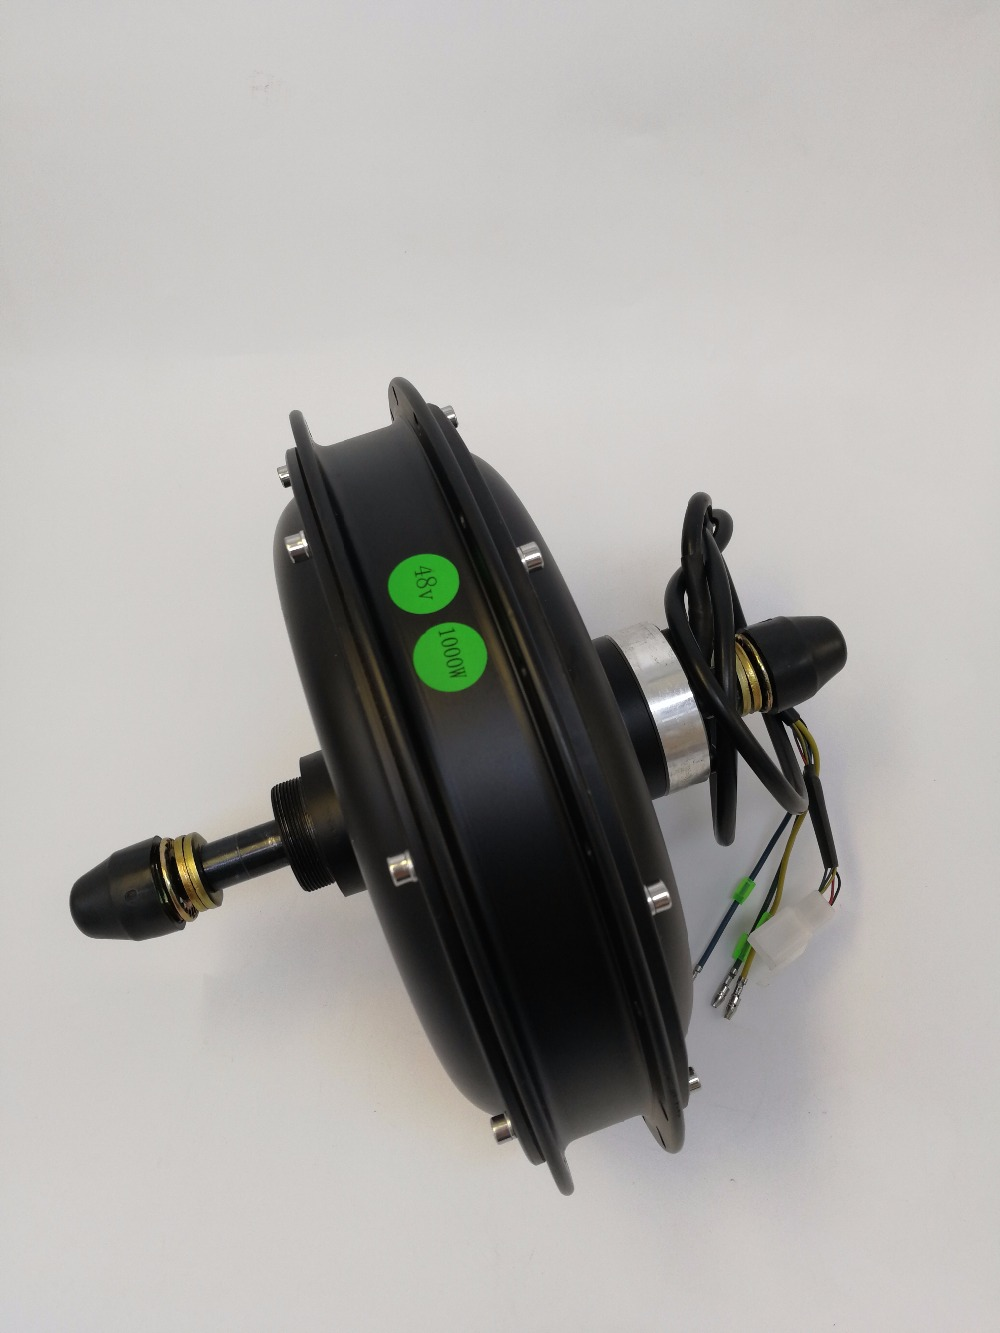 EVFITTING E bike Fatbike Motor 48Volt 1000W Brushless DC Hub Motor for Rear Wheel Fatbike 170mm Dropout-in Electric Bicycle Motor from Sports & Entertainment    1